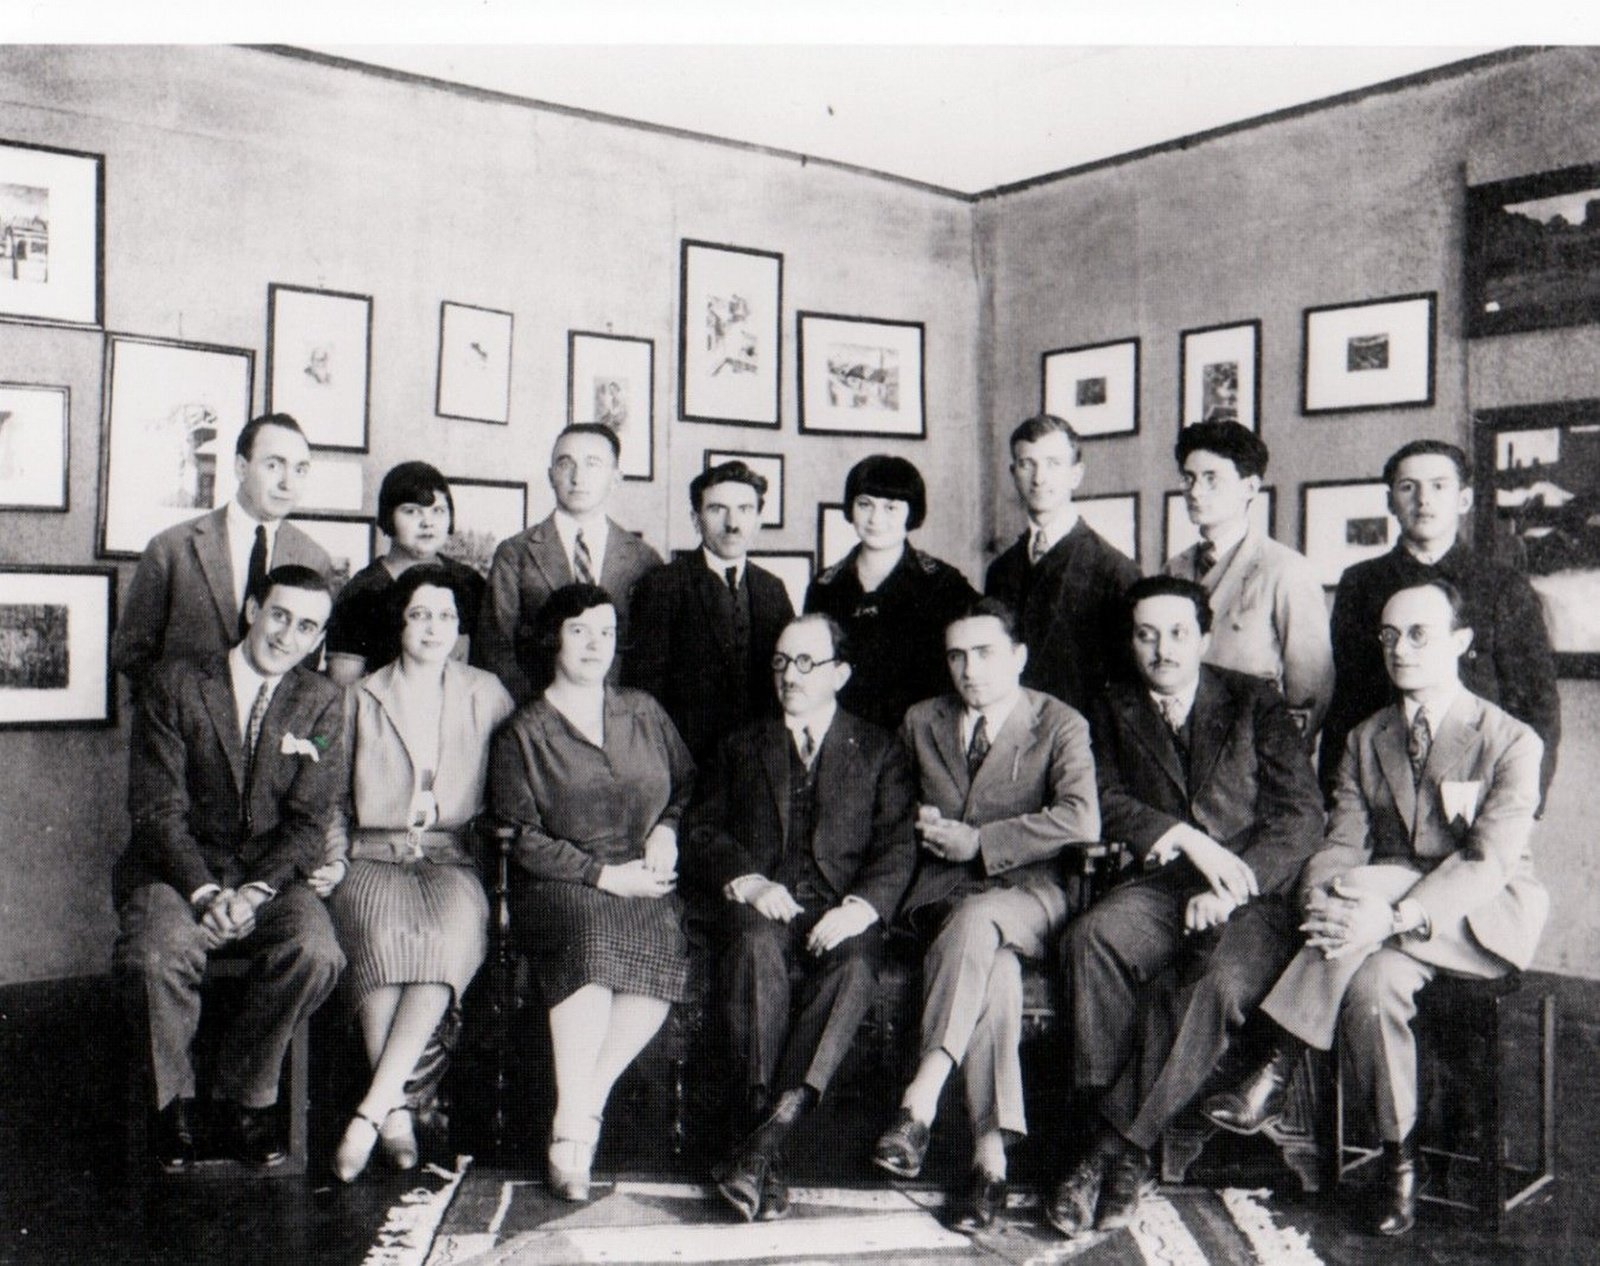 M. H. Maxy, first row first from the left, with his wife next to him and Marcel Janco, first row second from the right, Academy of Decorative Arts, Bucharest,, 1930, Unknown photographer, Josine Ianco-Starrels Collection, Copyright Not Evaluated